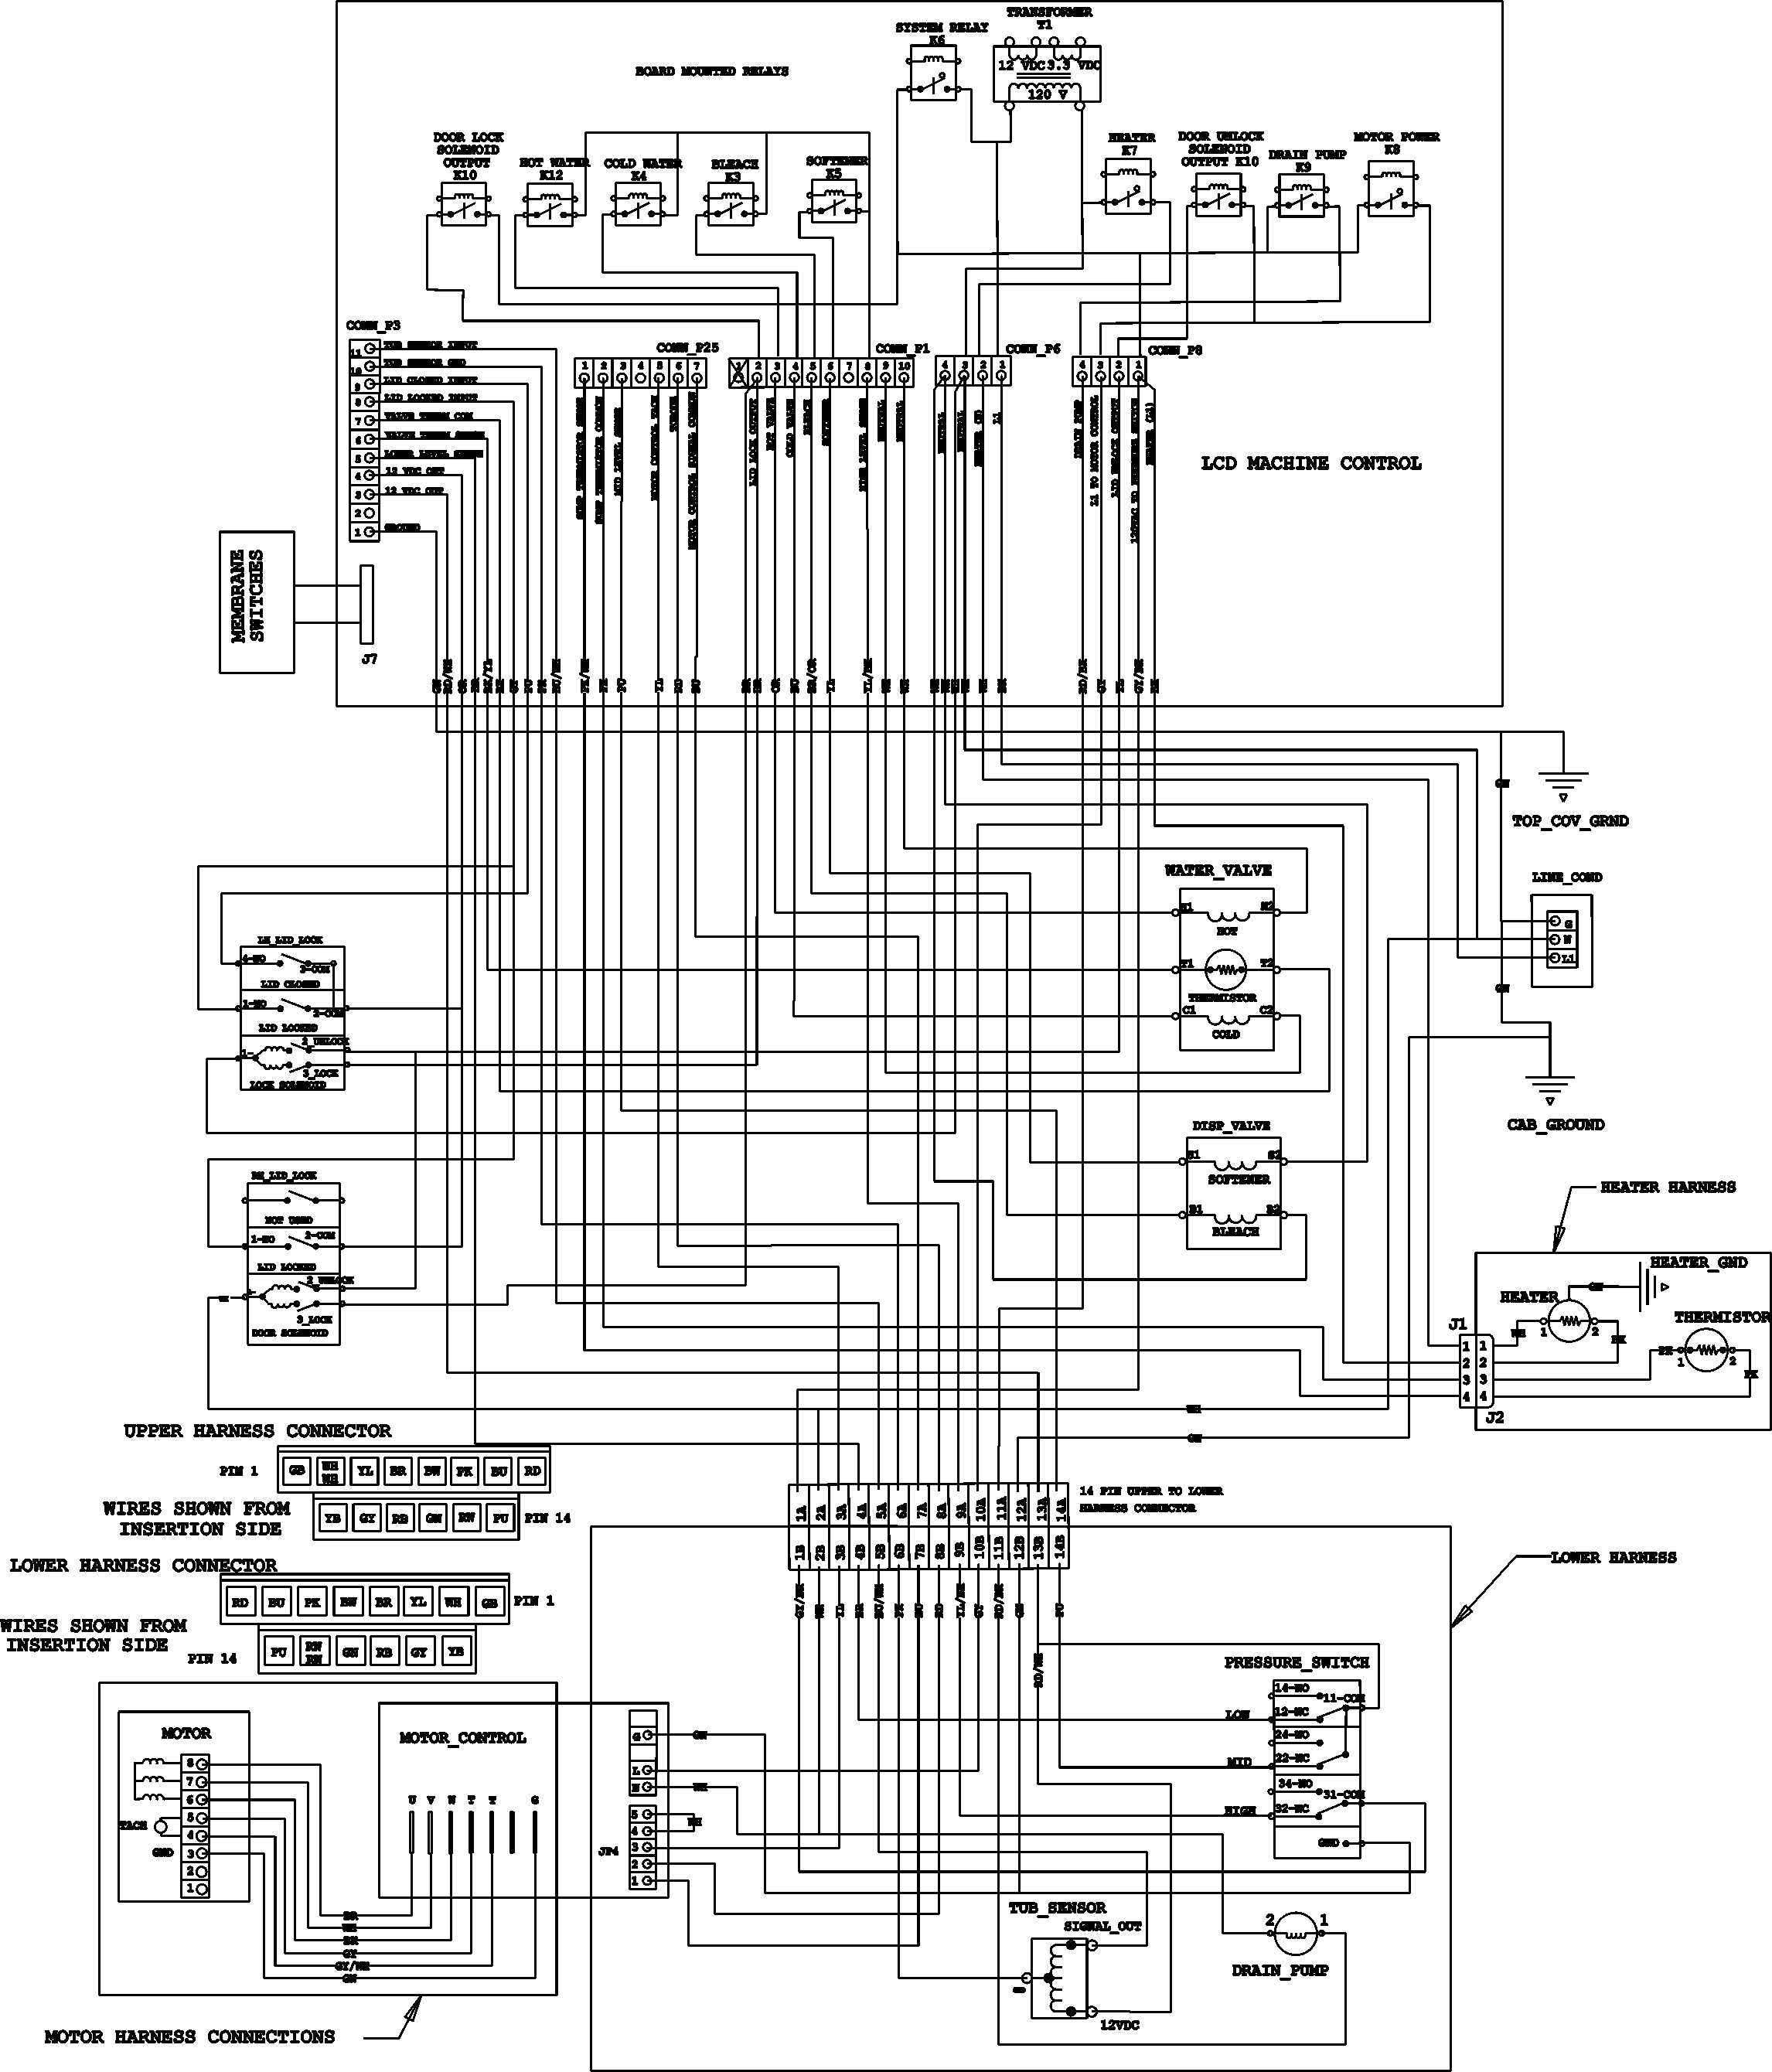 Wiring Diagram For Bosch Washing Machine